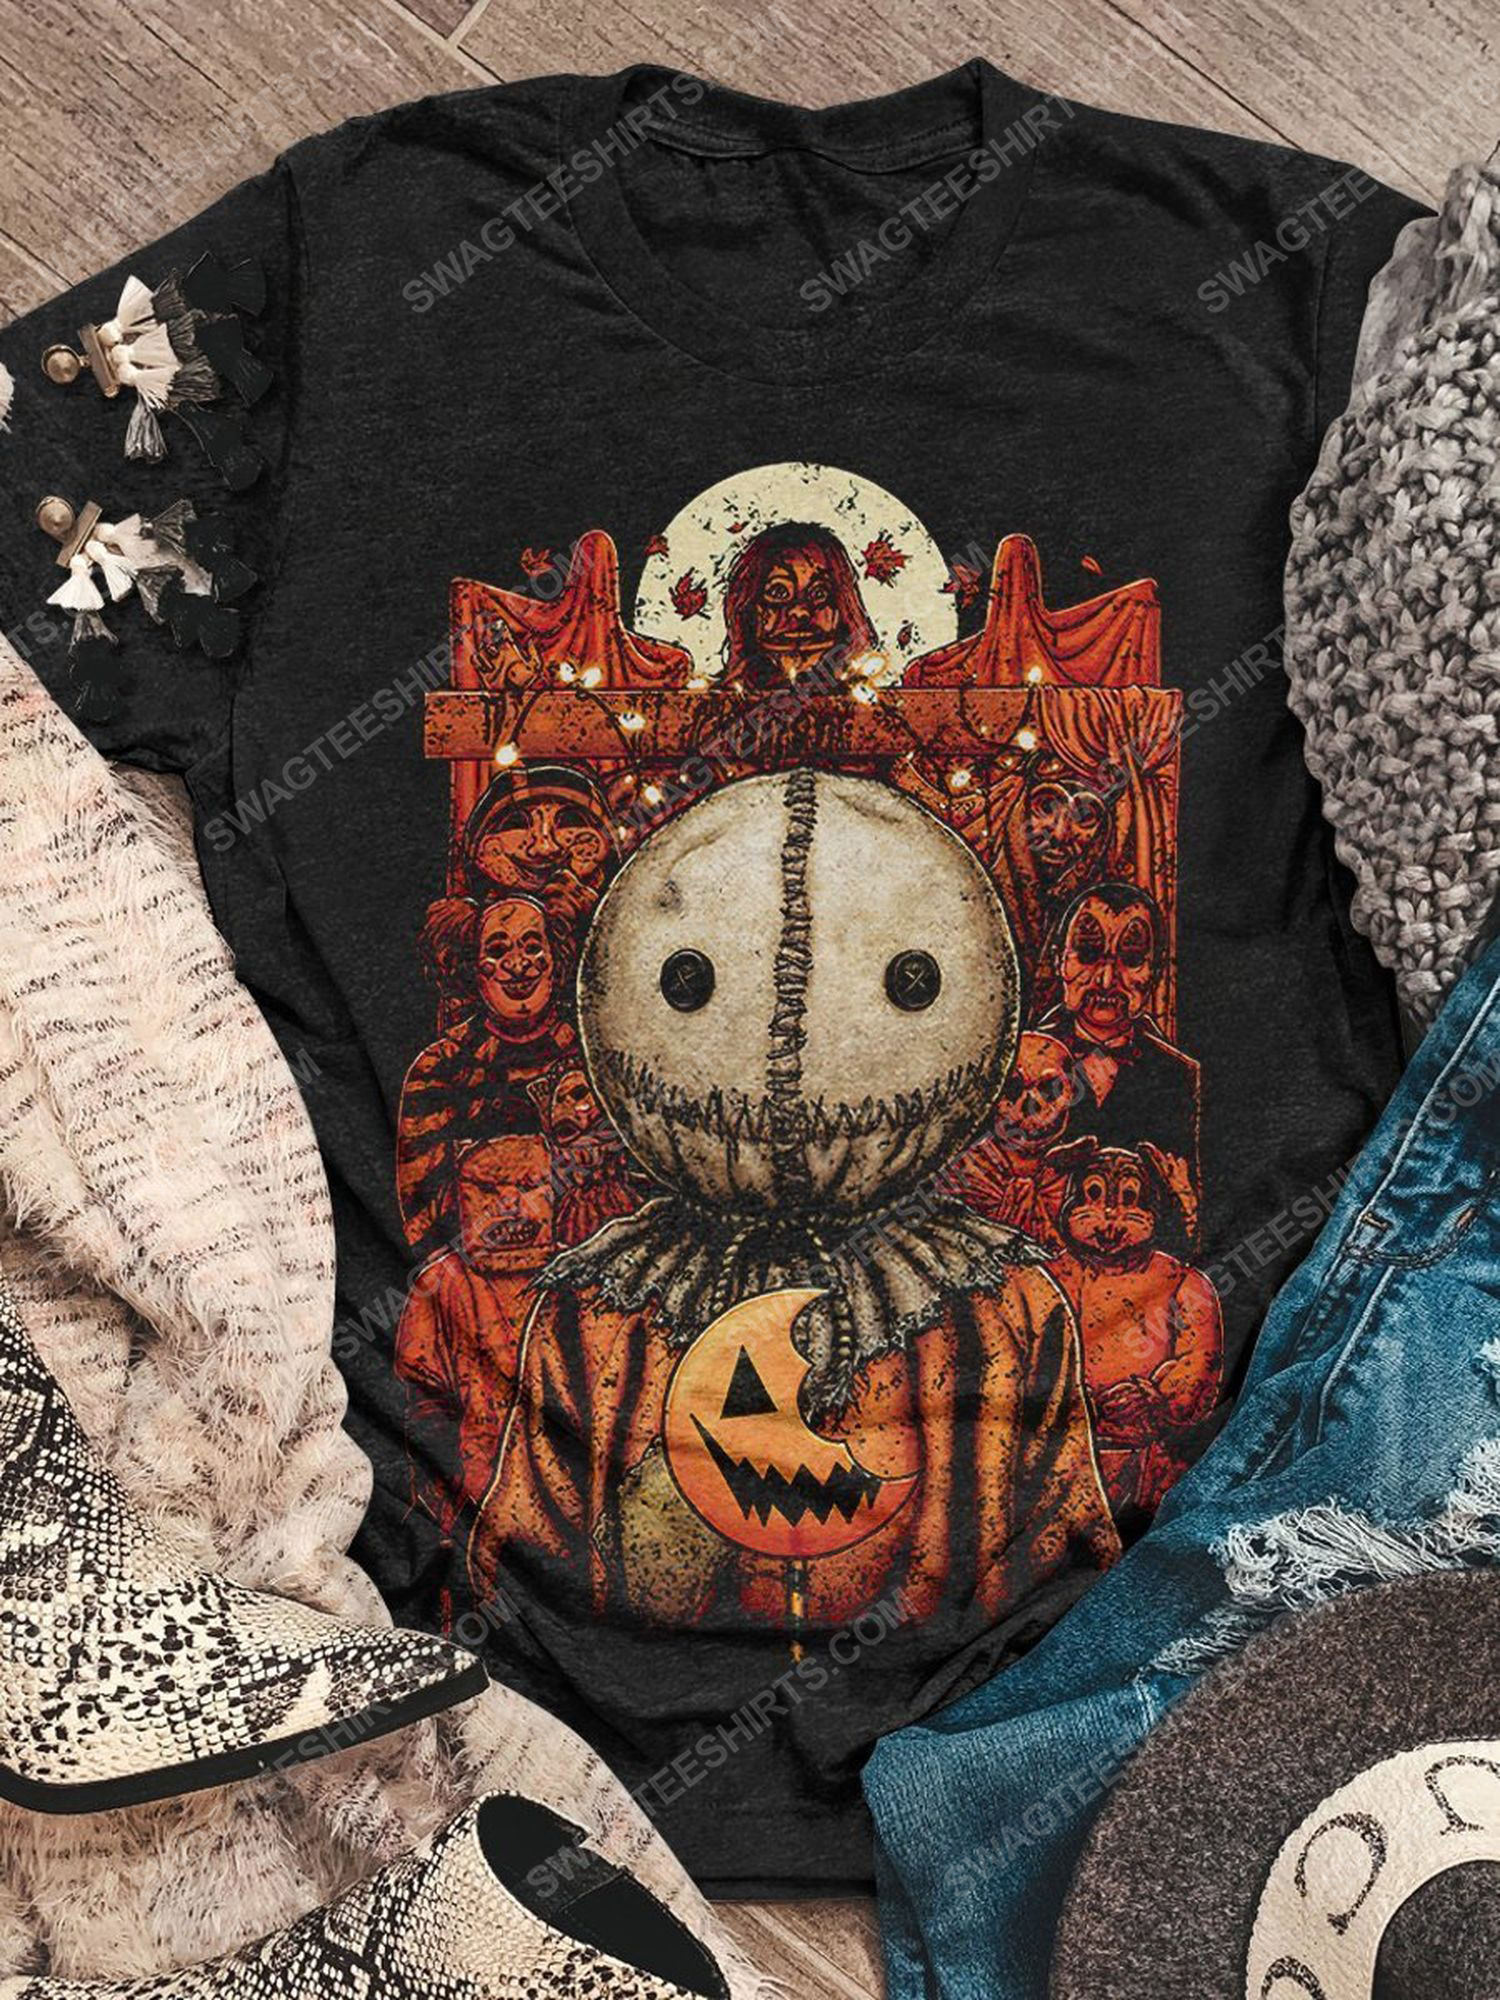 Halloween night and trick or treat scary movie shirt 1